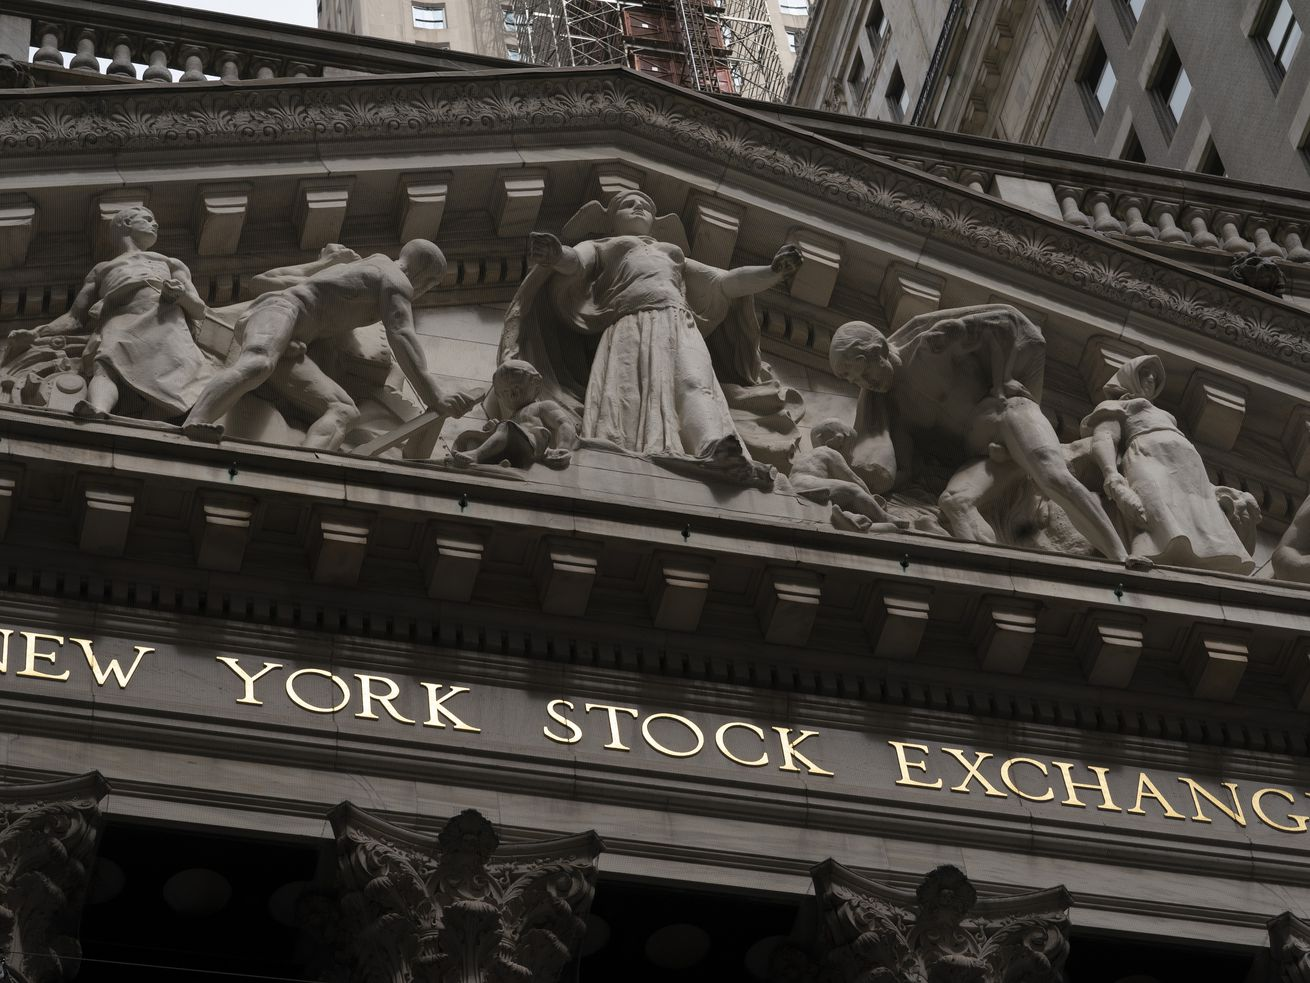 The front of the New York Stock Exchange is shown, Monday, May 24, 2021. Stocks are opening higher on Wall Street Wednesday, May 26 as inflation fears ease and investors look ahead to data expected to show economic growth accelerating in the U.S.